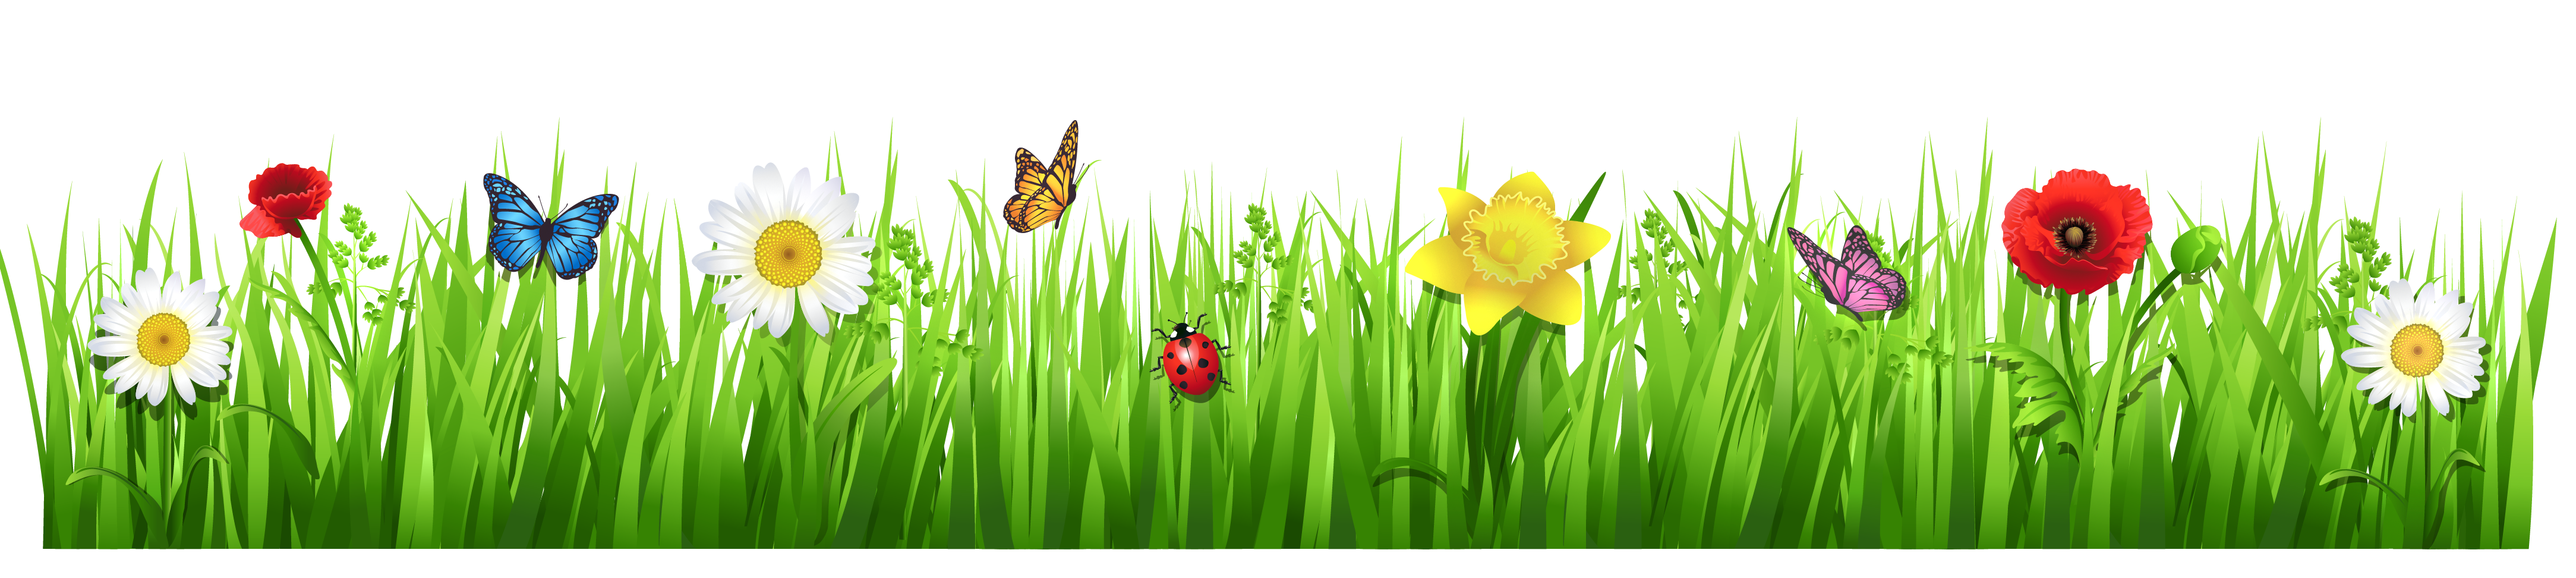 Spring flower clipart transparent picture royalty free library Grass Clip Art #10966 | Png | Pinterest | Clip art, Note paper and ... picture royalty free library